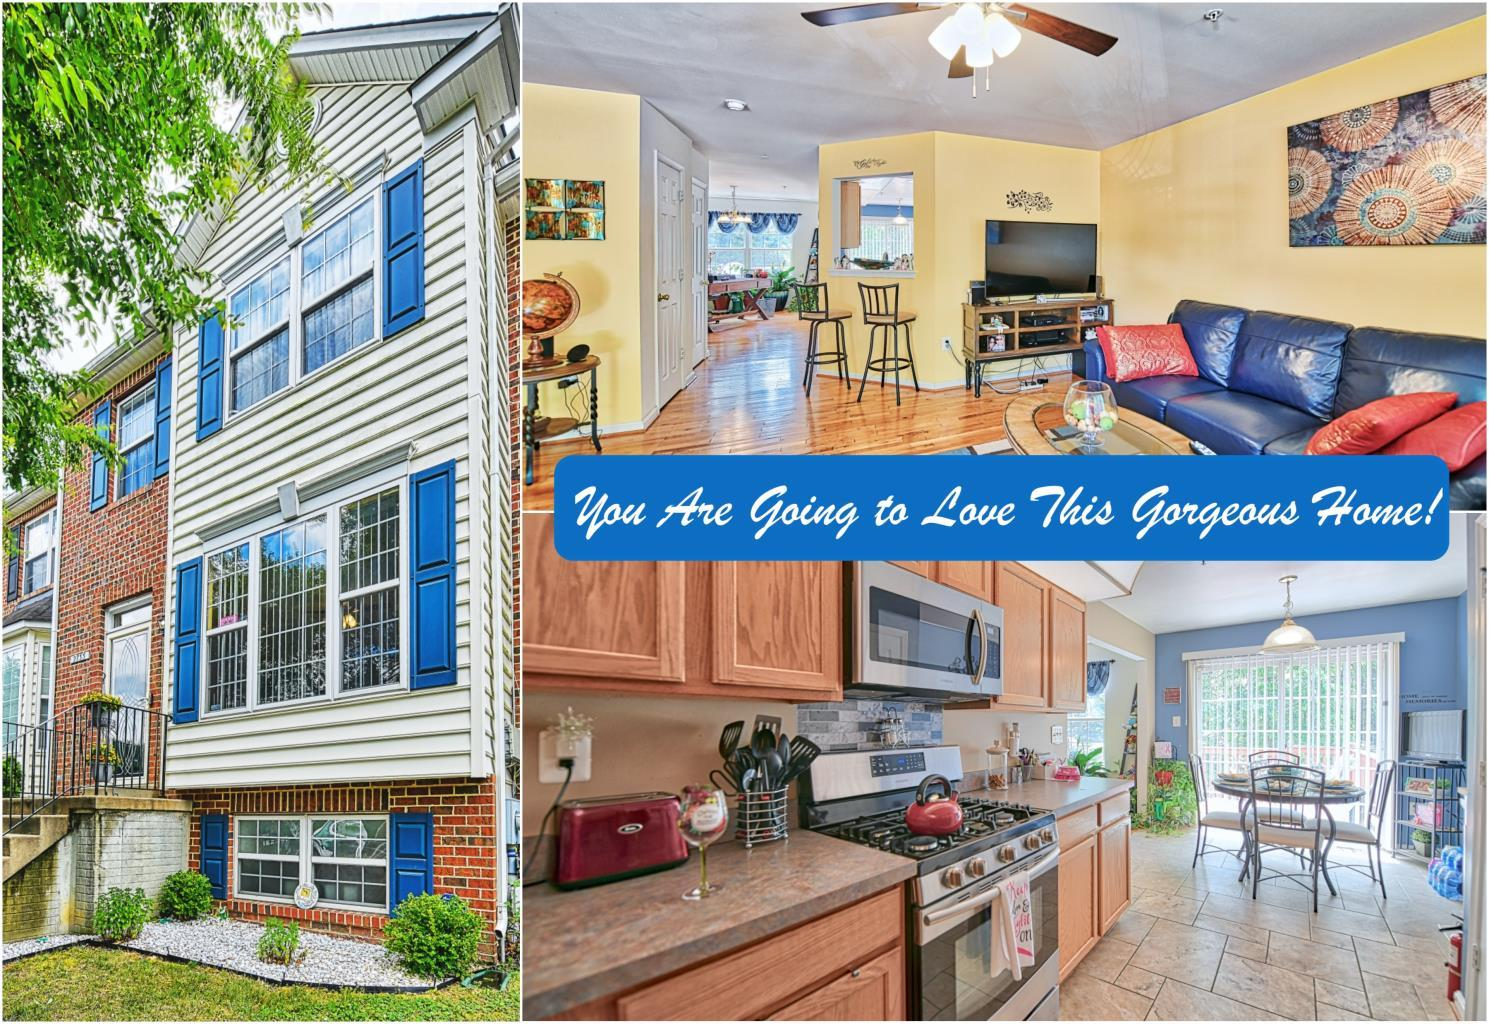 2733 Stanford Place in Waldorf is a beautiful townhouse available for sale by Marie Lally, Realtor with O'Brien Realty of Southern Maryland